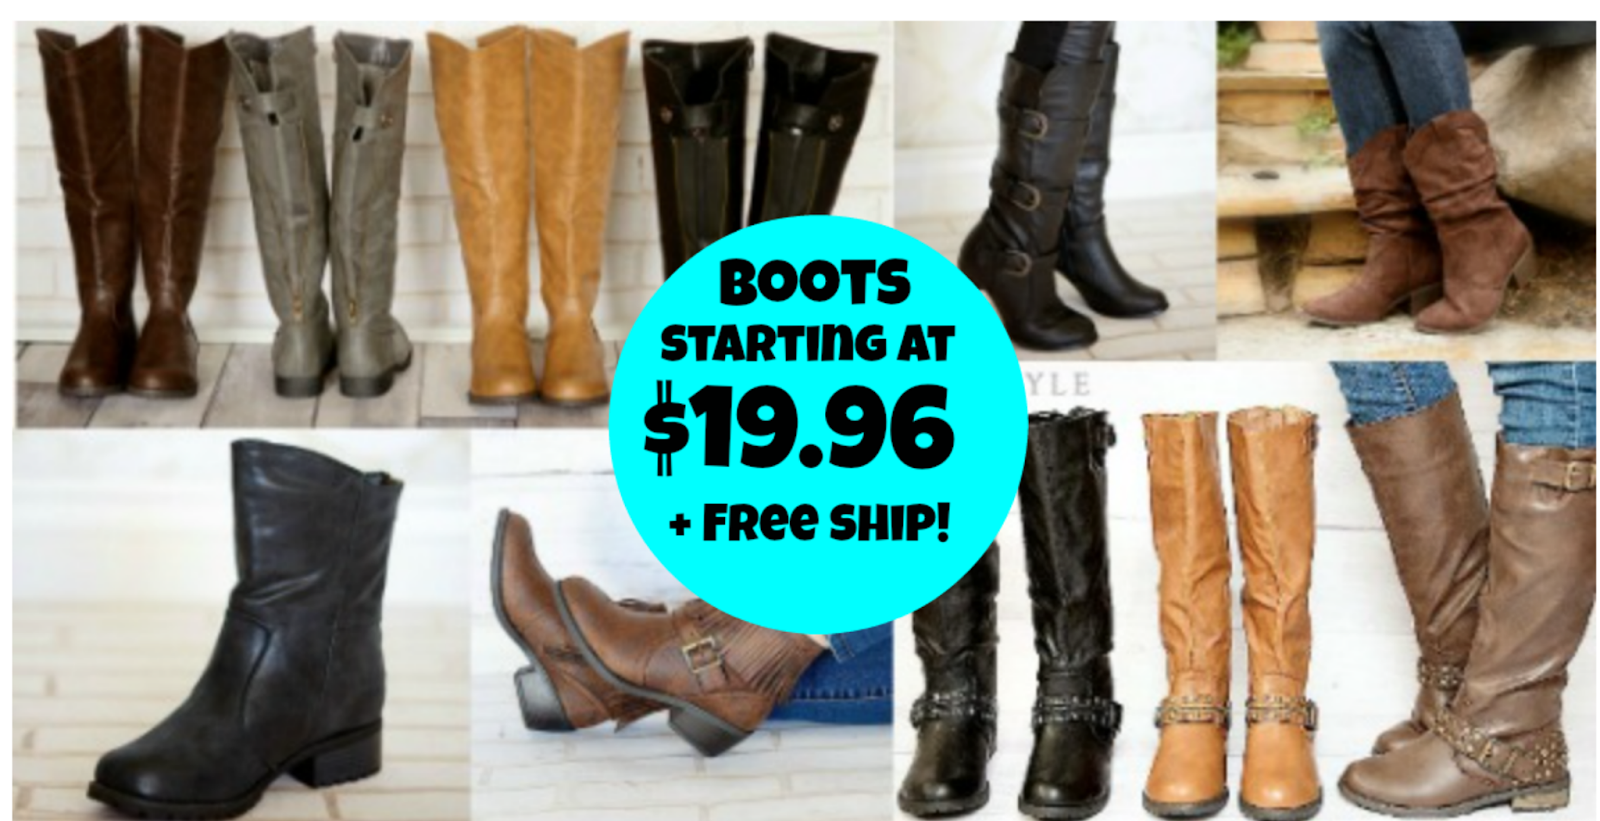 http://www.thebinderladies.com/2014/12/cents-of-style-30-off-womens-boots-free.html#.VJR7gAAIA